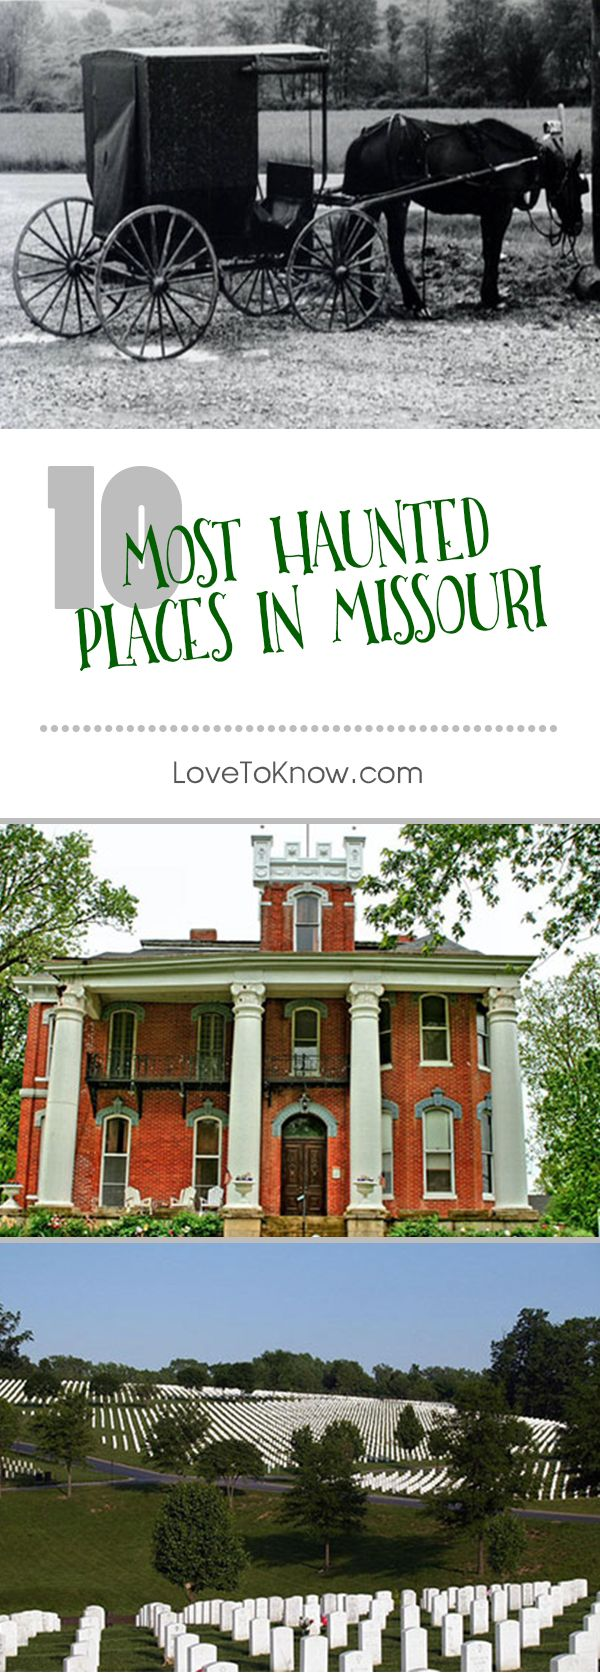 The stories behind the 10 most haunted places in Missouri. Seriously, the story about the Governor's Mansion totally gave me the chills. | 10 Most Haunted Places in Missouri from #LoveToKnow